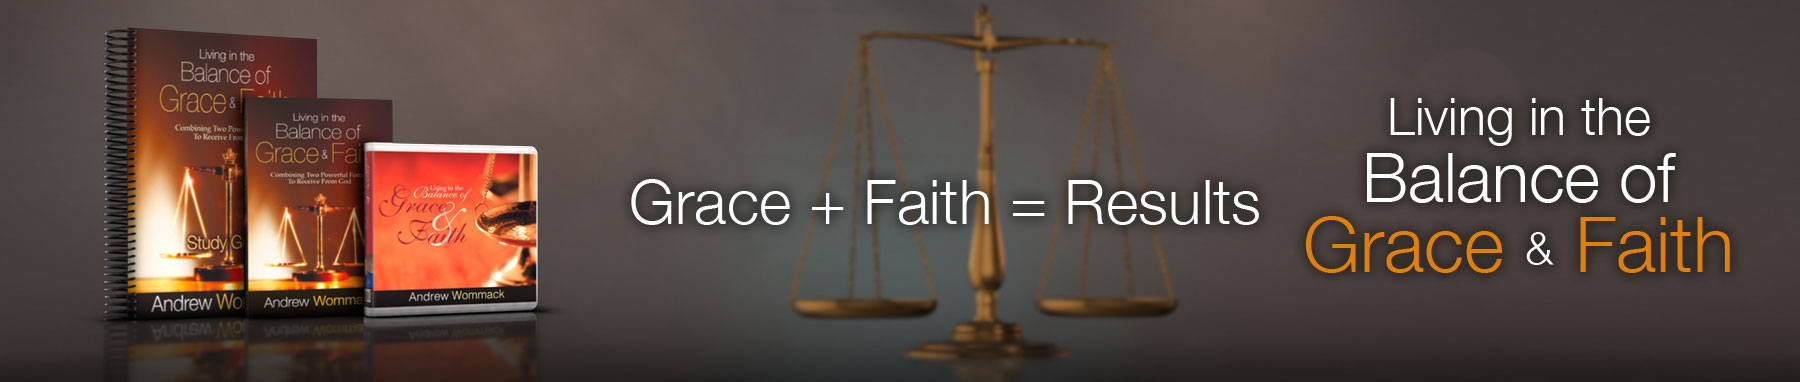 Living in the Balance of Grace and Faith - Andrew Wommack Ministries